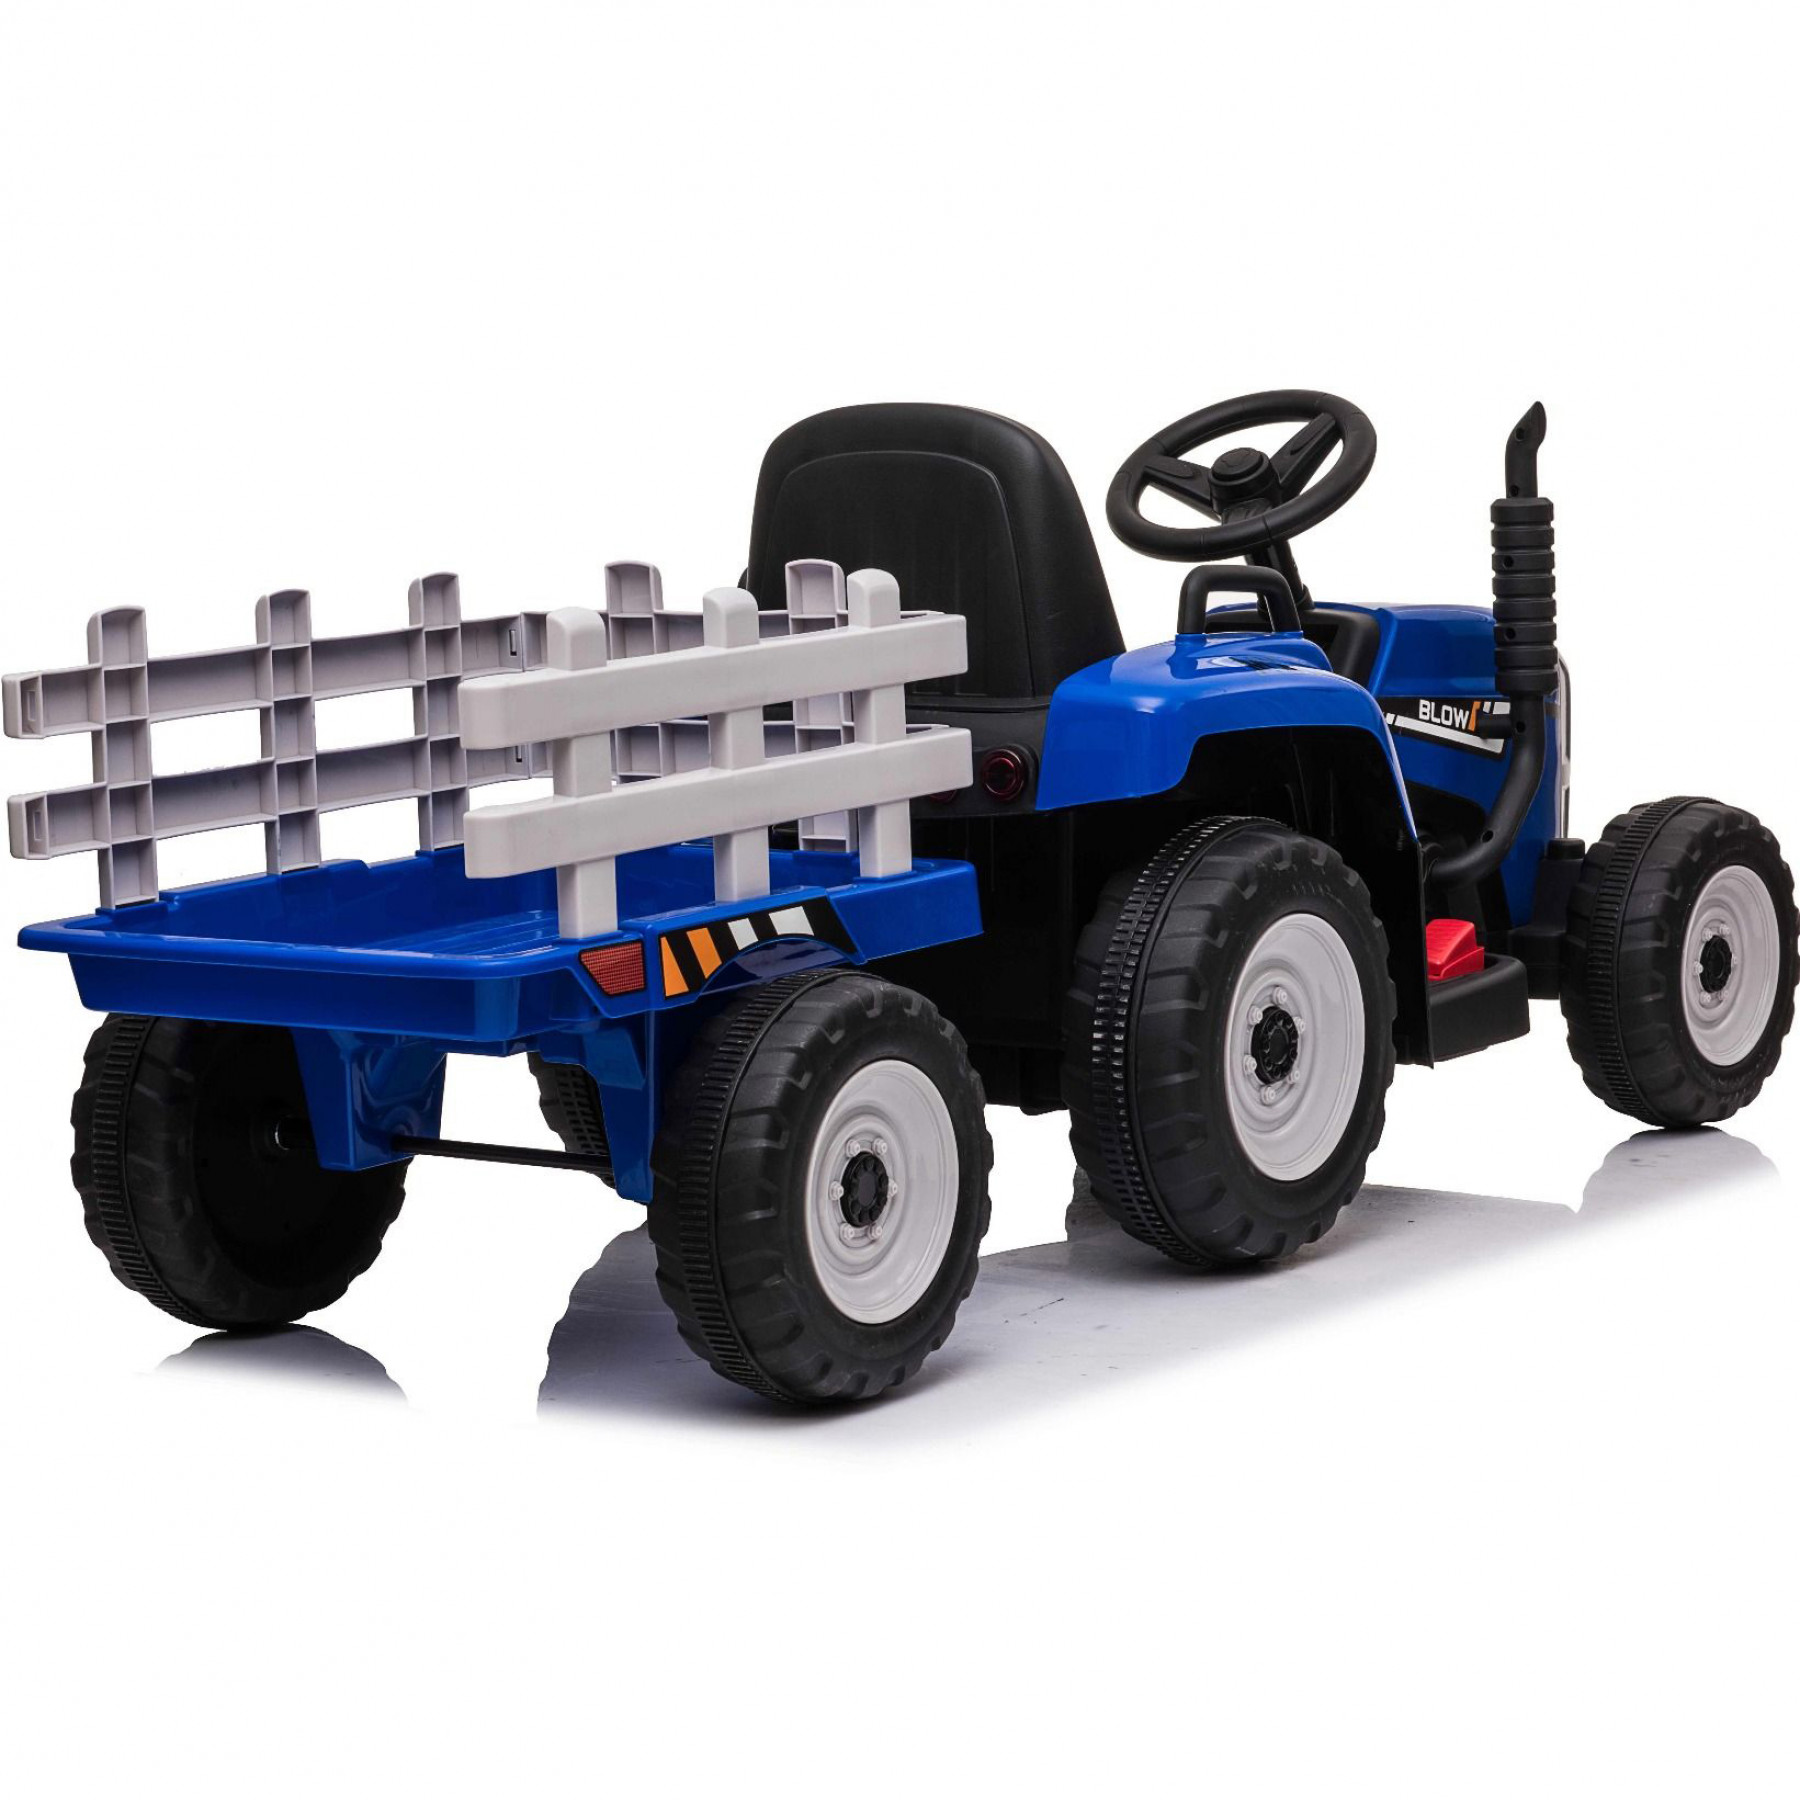 Xtreme 12V Ride on Electric Farm Tractor With Trailer And 2.4G Remote Control Blue